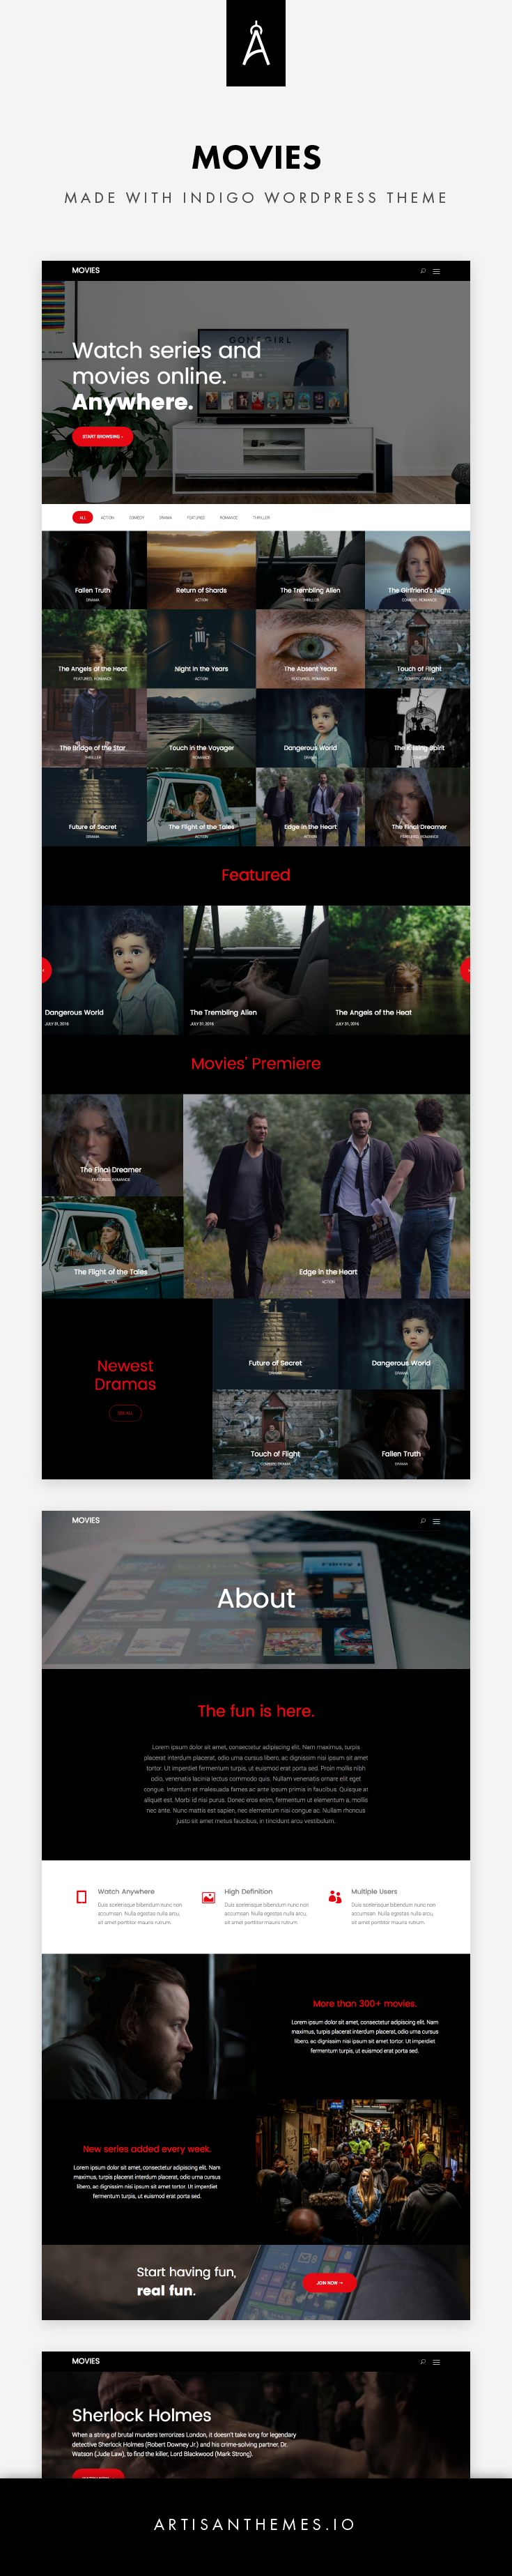 Movies, a site ready to be installed made with Indigo WordPress Theme by Artisan Themes.  Yeah, we had a little fun with this one. 😉  Inspired on a very famous online streaming site, a ready made site that can serve a movies/TV series catalog, a film production company or any other entertainment site.